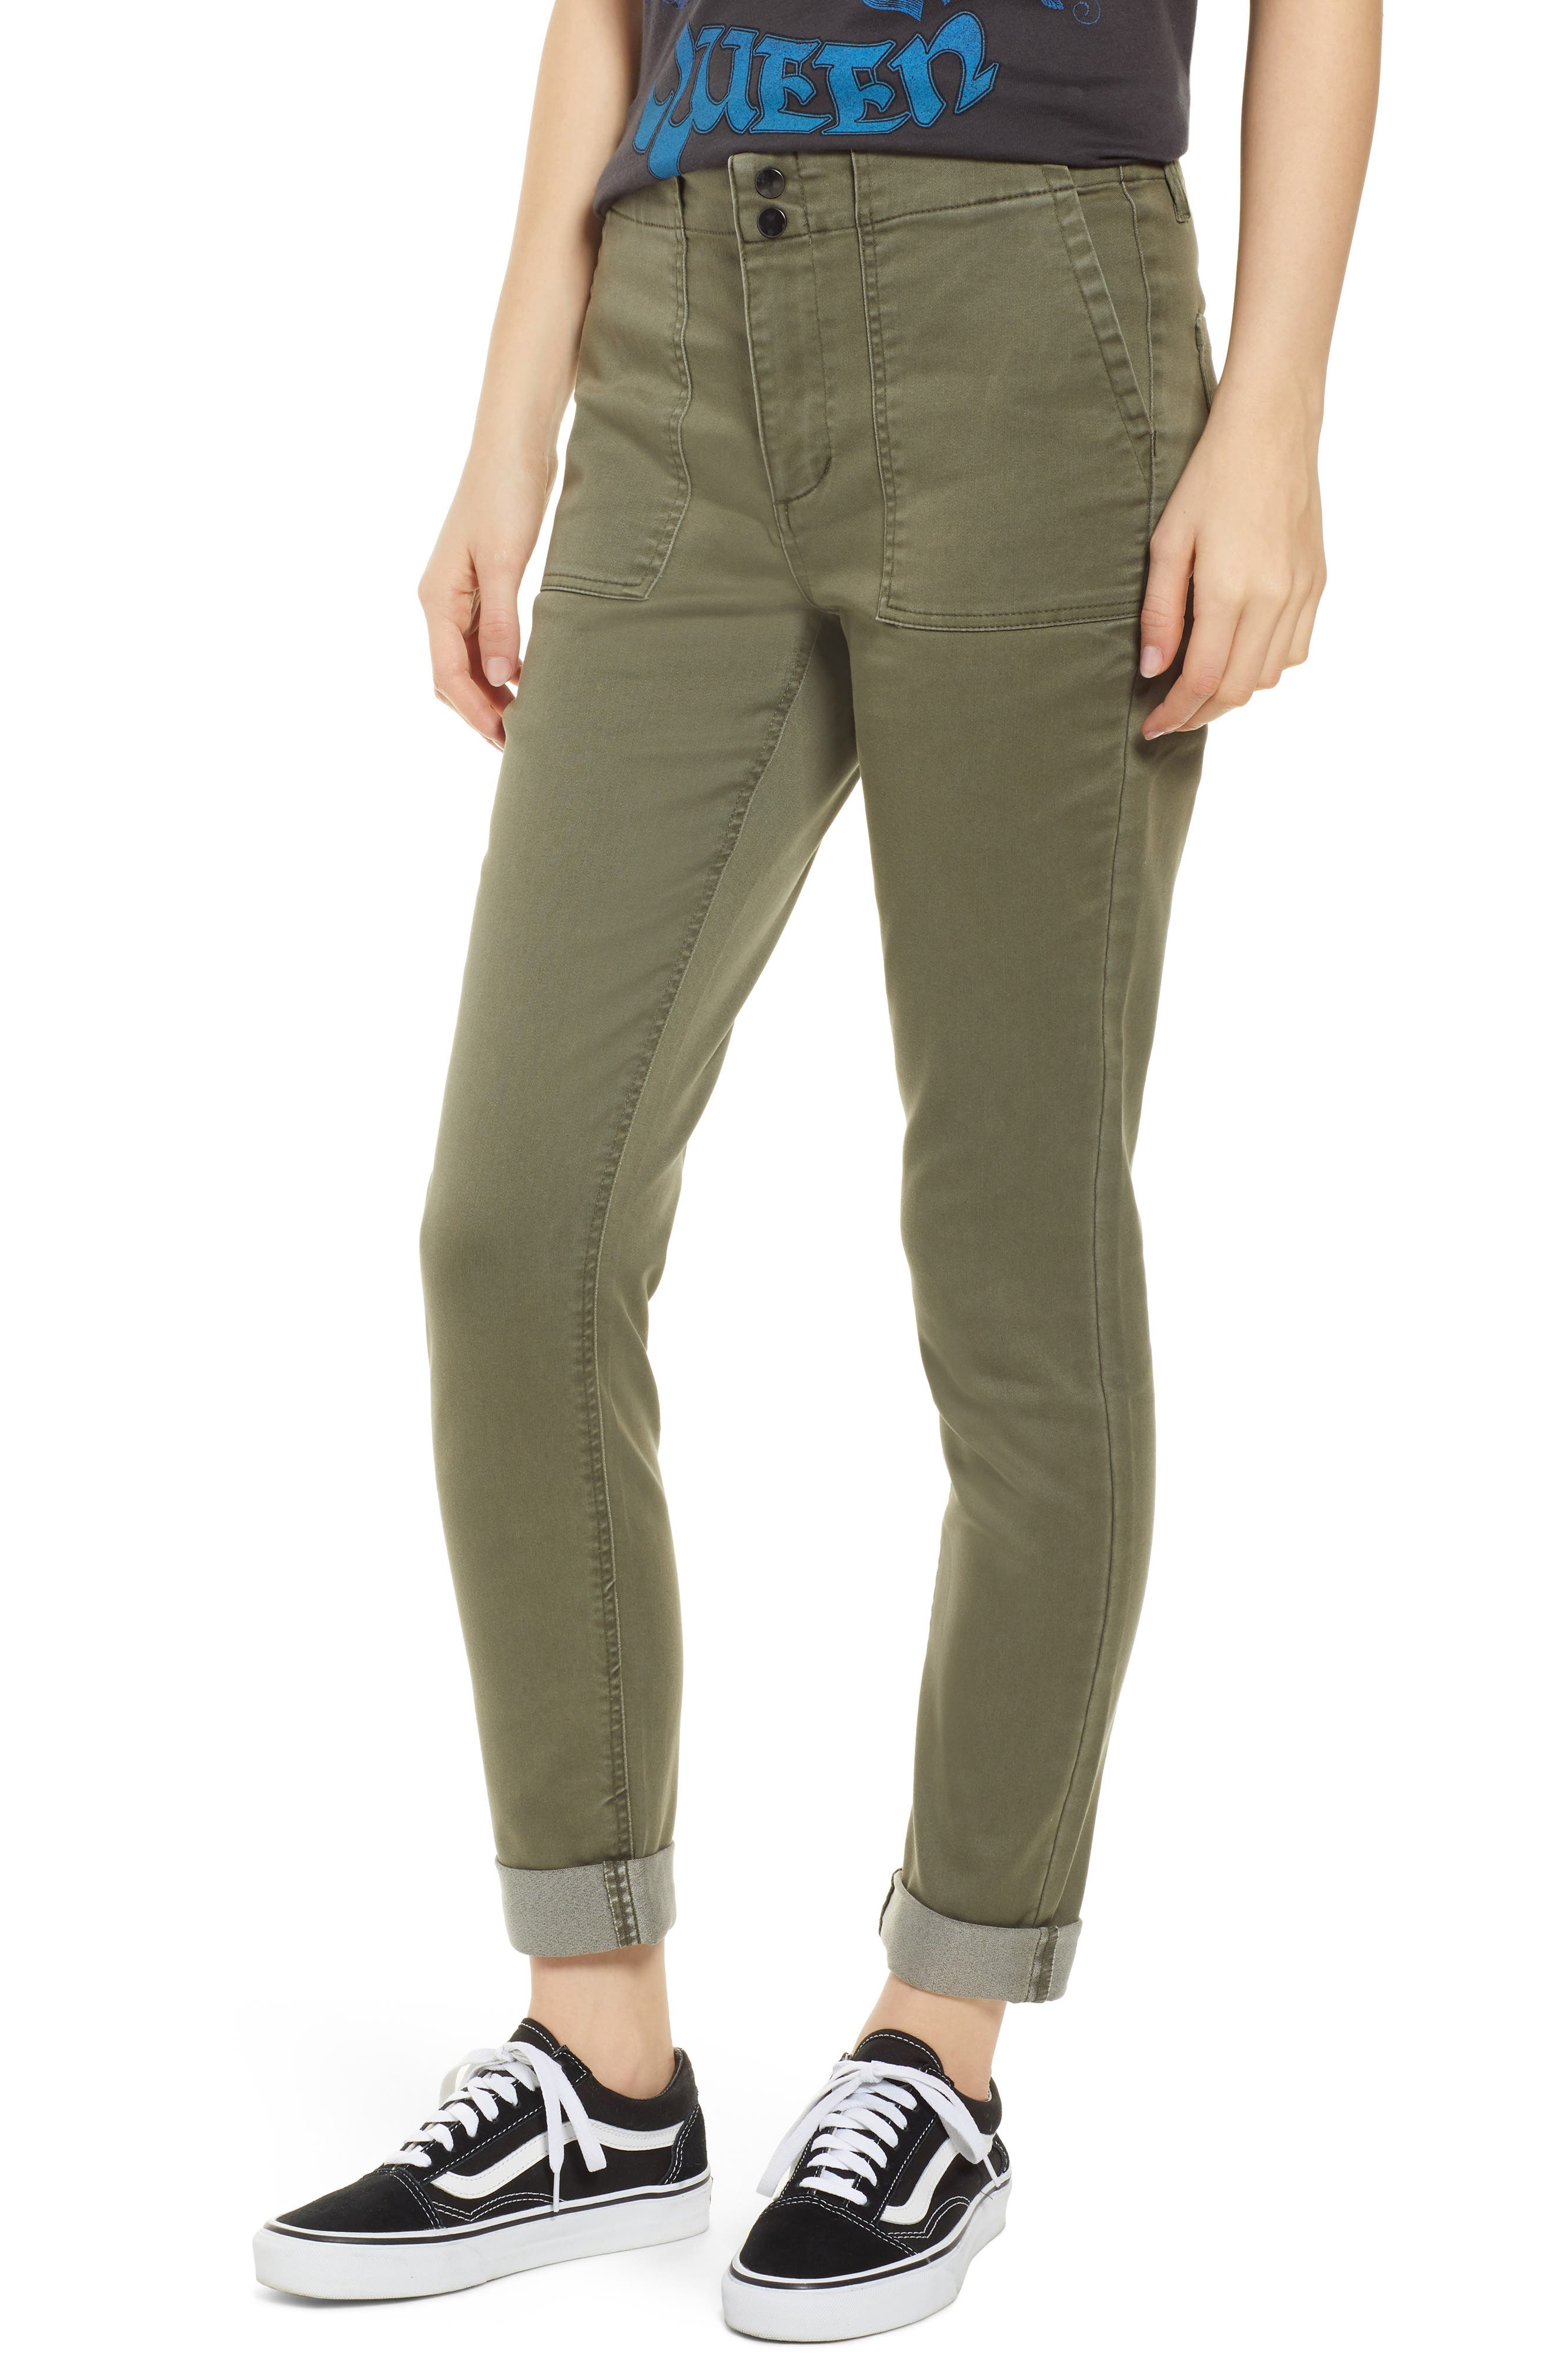 TINSEL, Cuffed Sateen Skinny Pants, Main thumbnail 1, color, DUSTY OLIVE